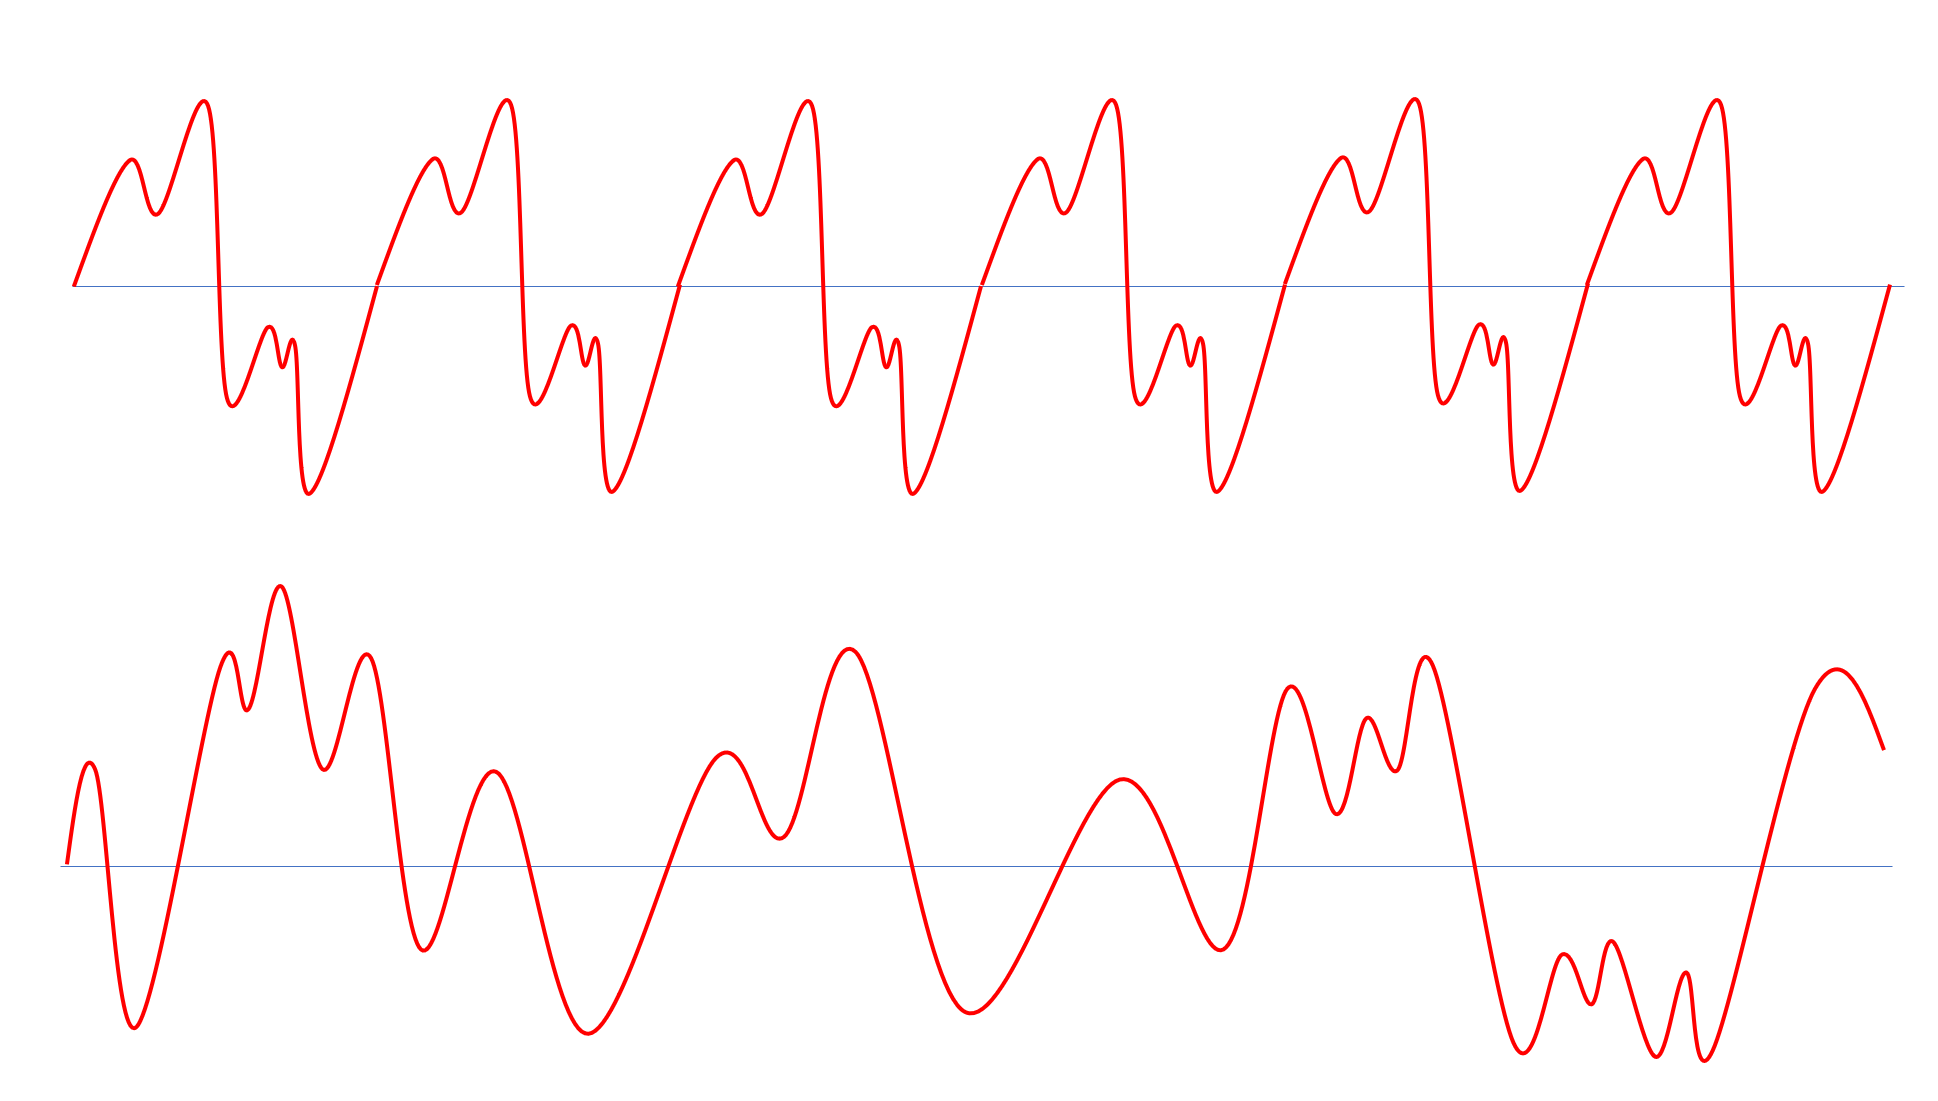 Top: A periodic function. Bottom: An a-periodic function.